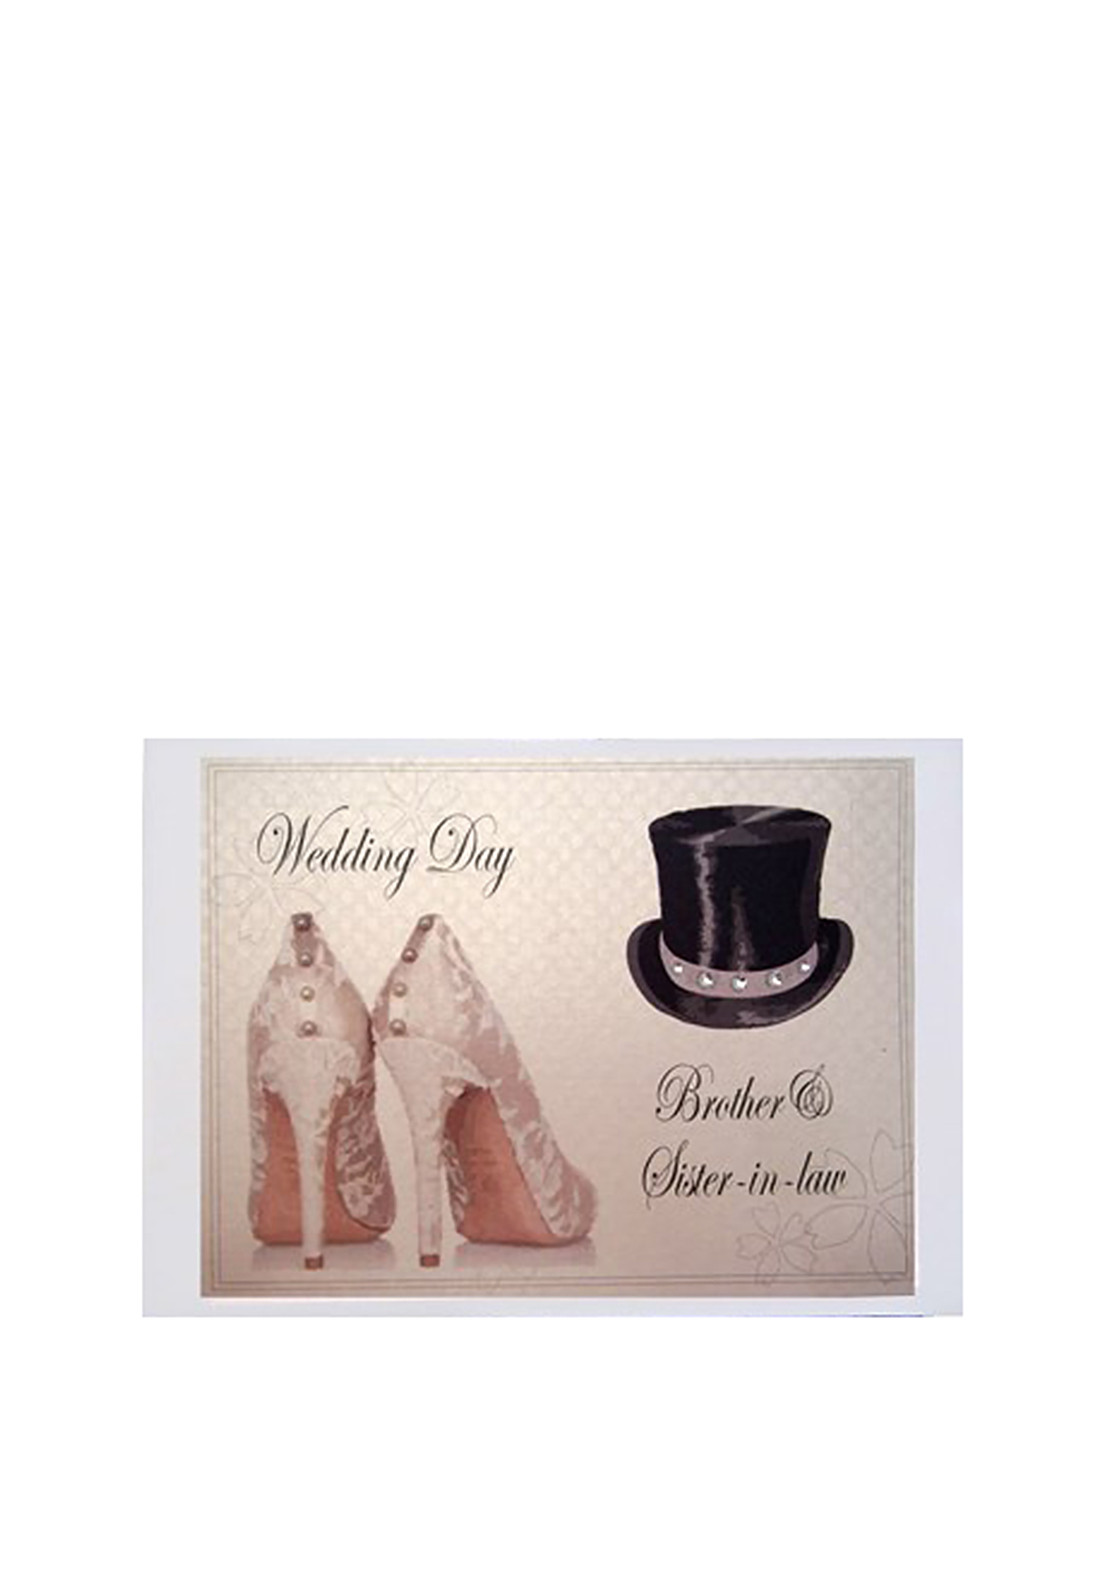 Wedding Gift For Brother Ireland : Buy Georgie Tiny Wedding Album Brother and Sister-in-law, White ...